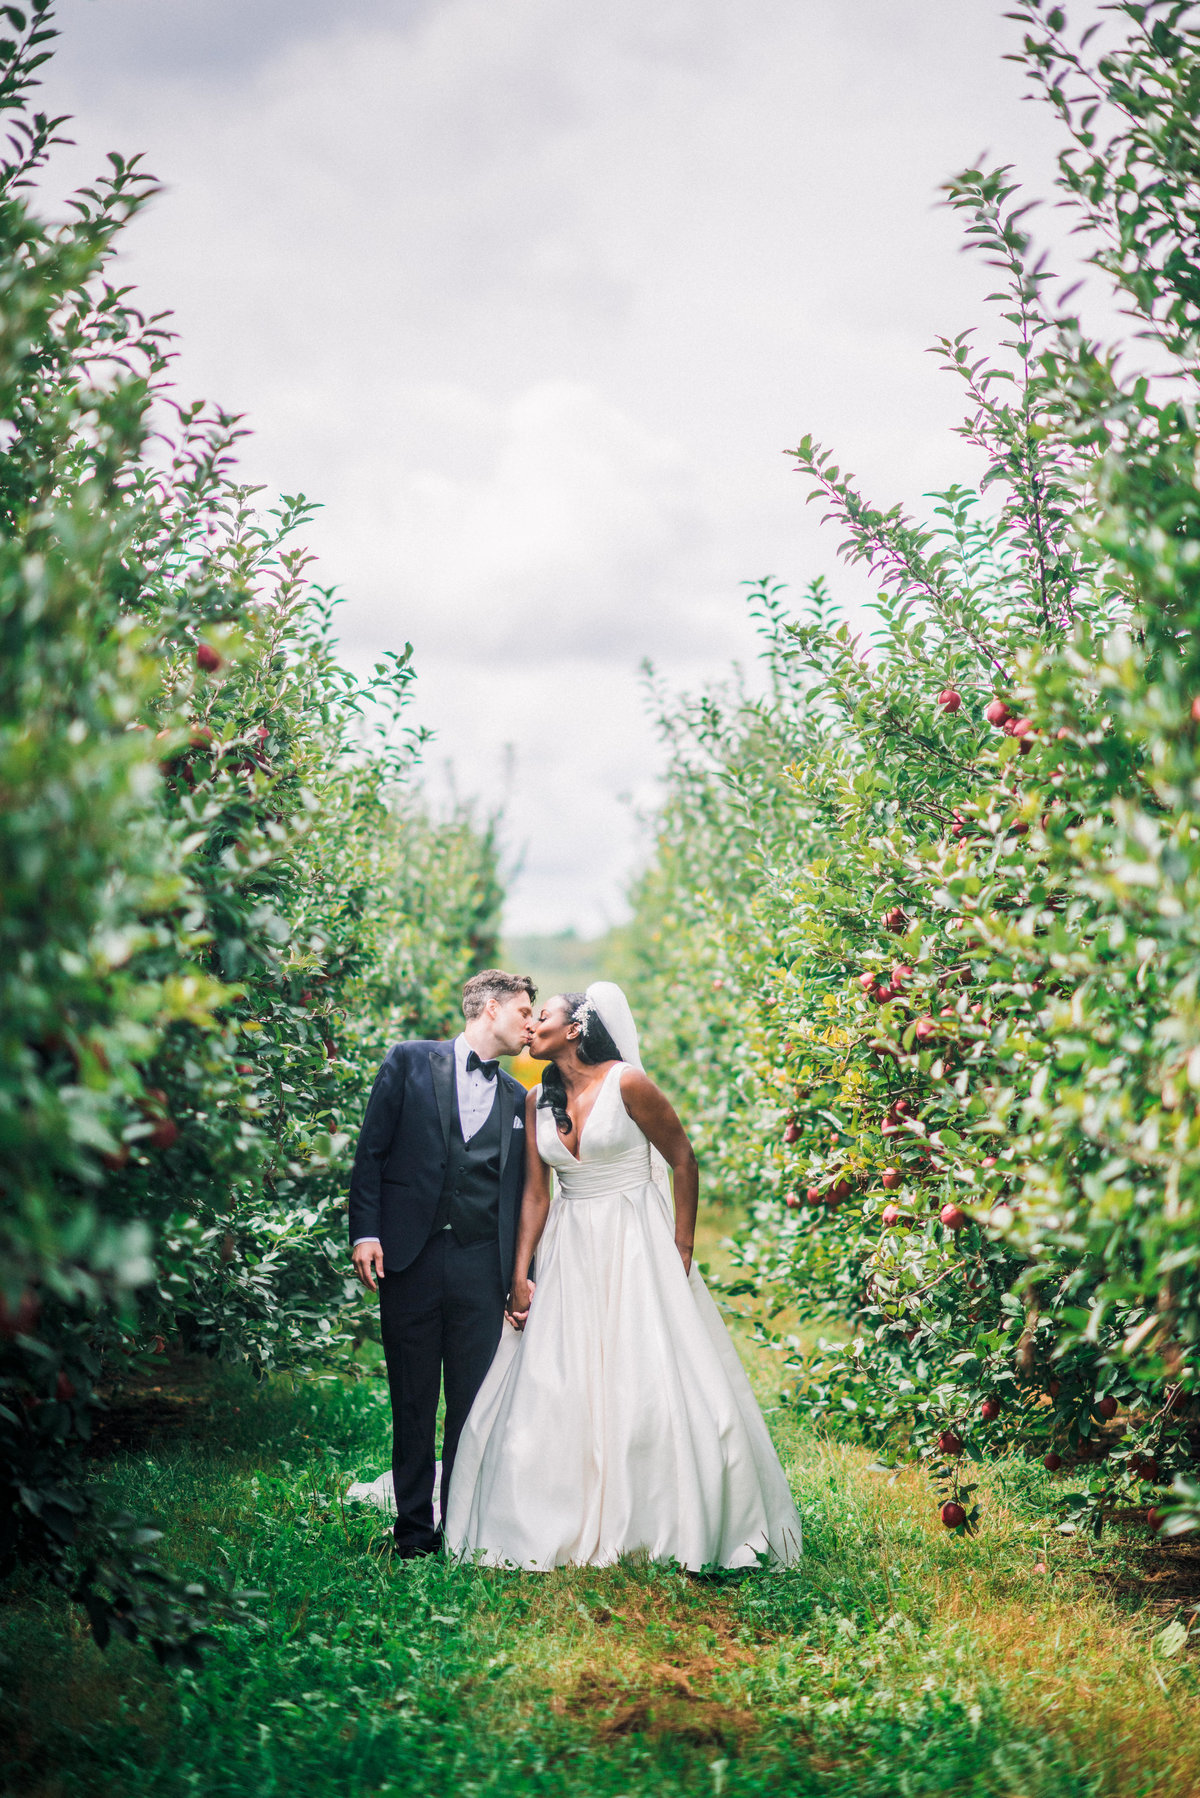 Bride and groom kiss in an apple orchard